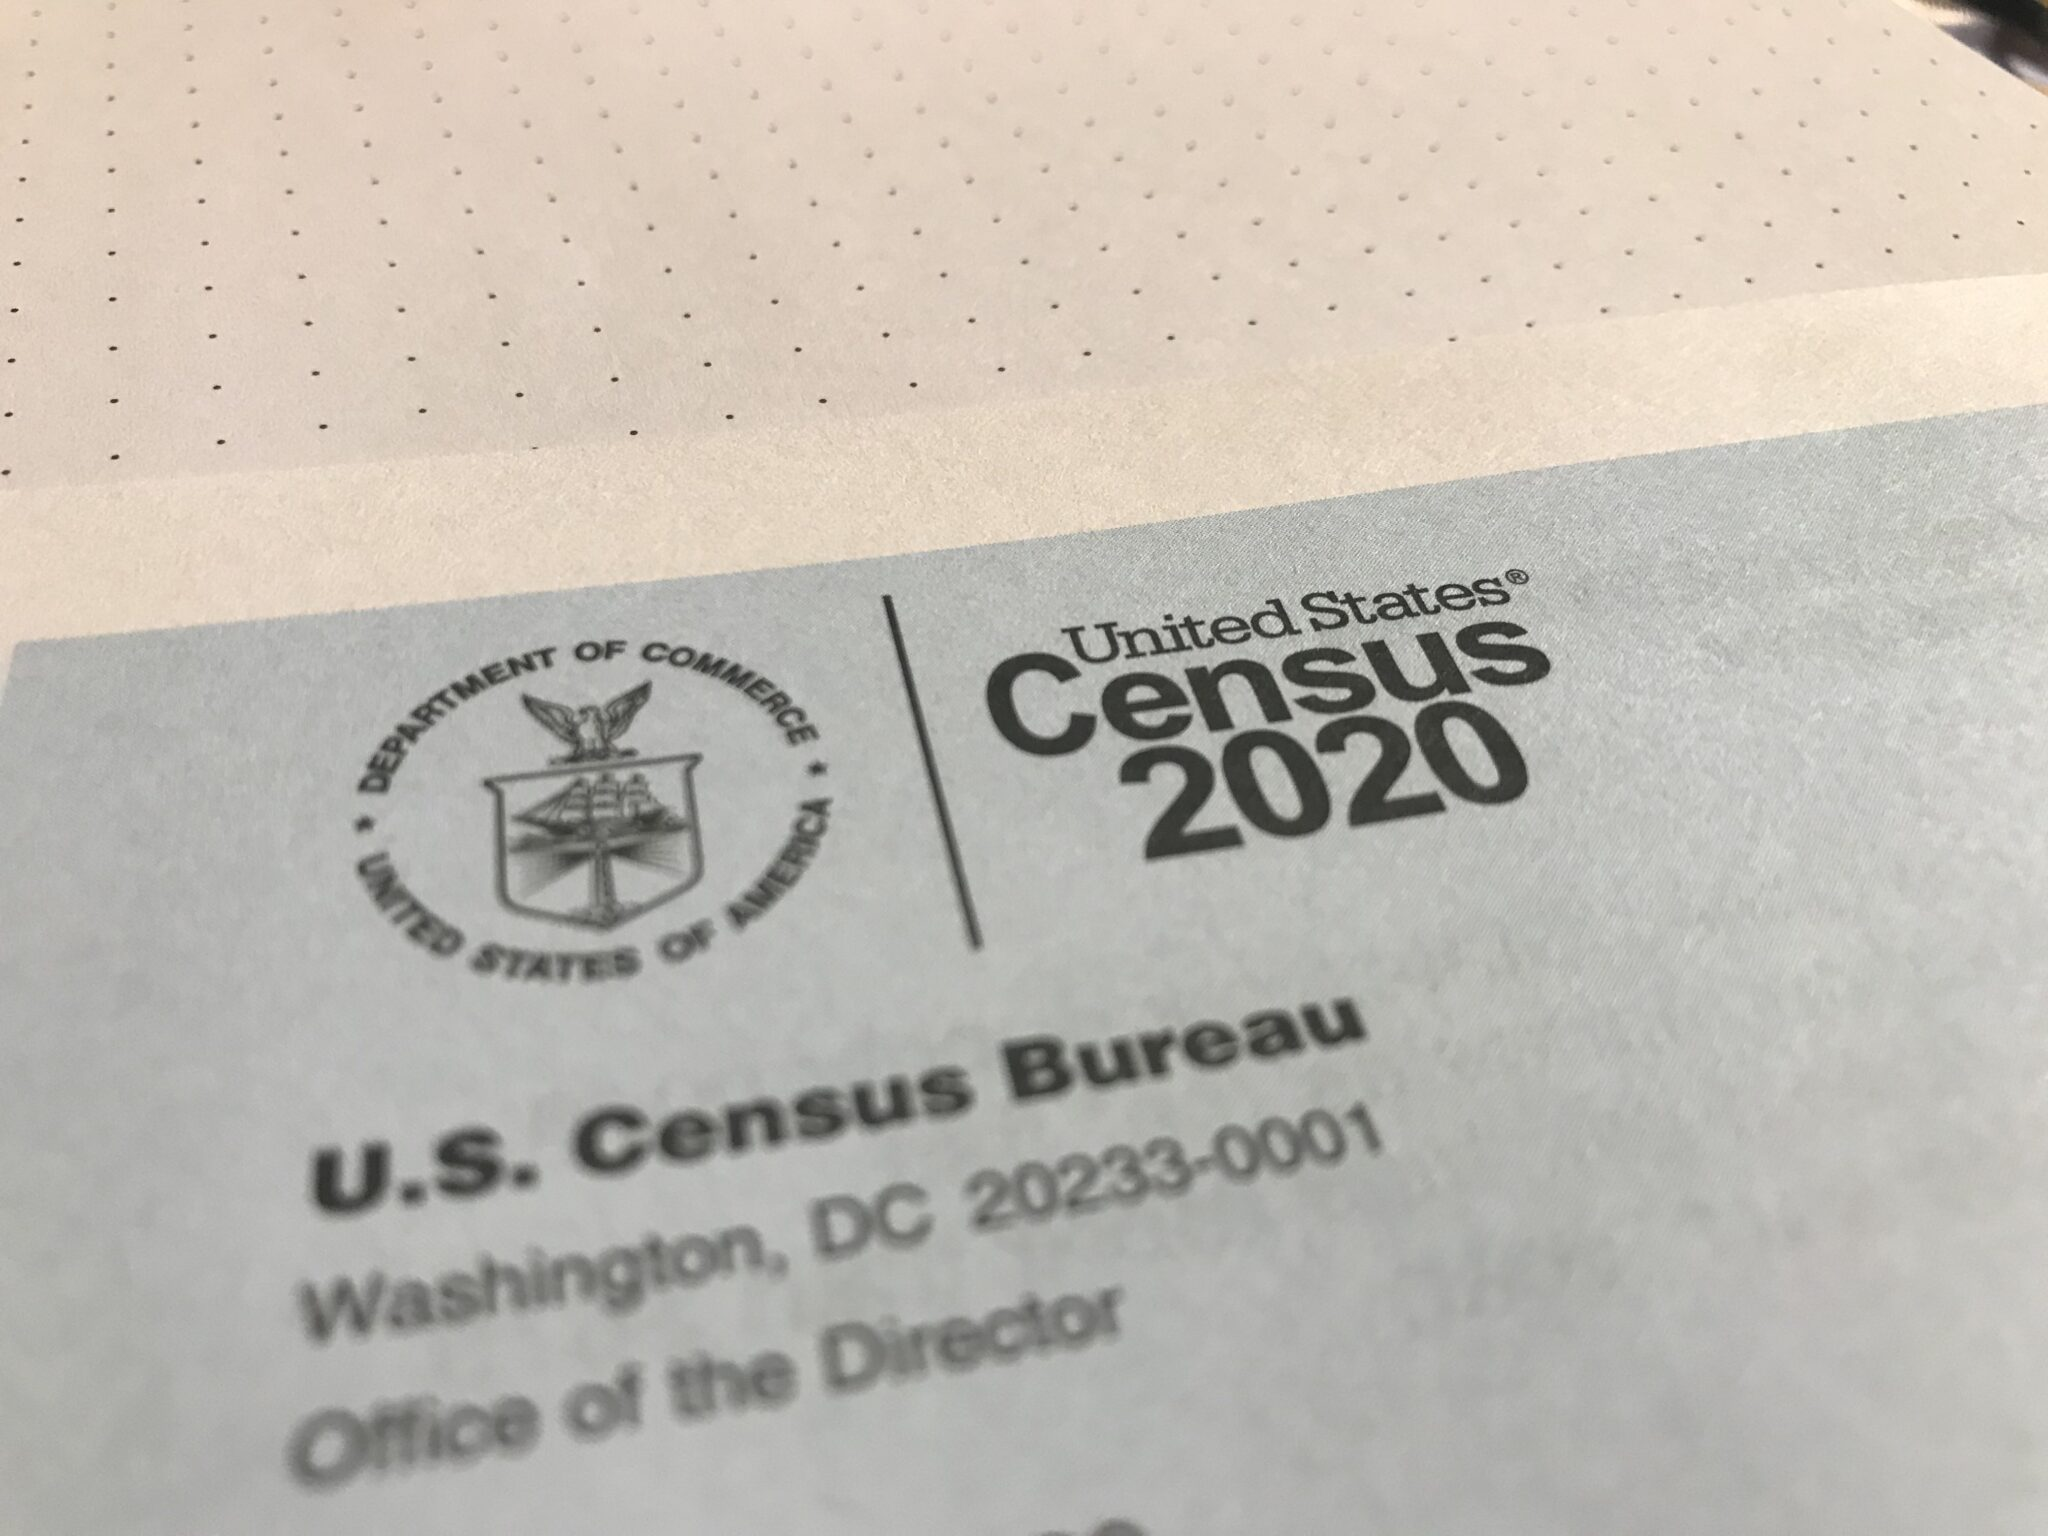 IMPORTANT MESSAGE FROM THE U.S. CENSUS BUREAU